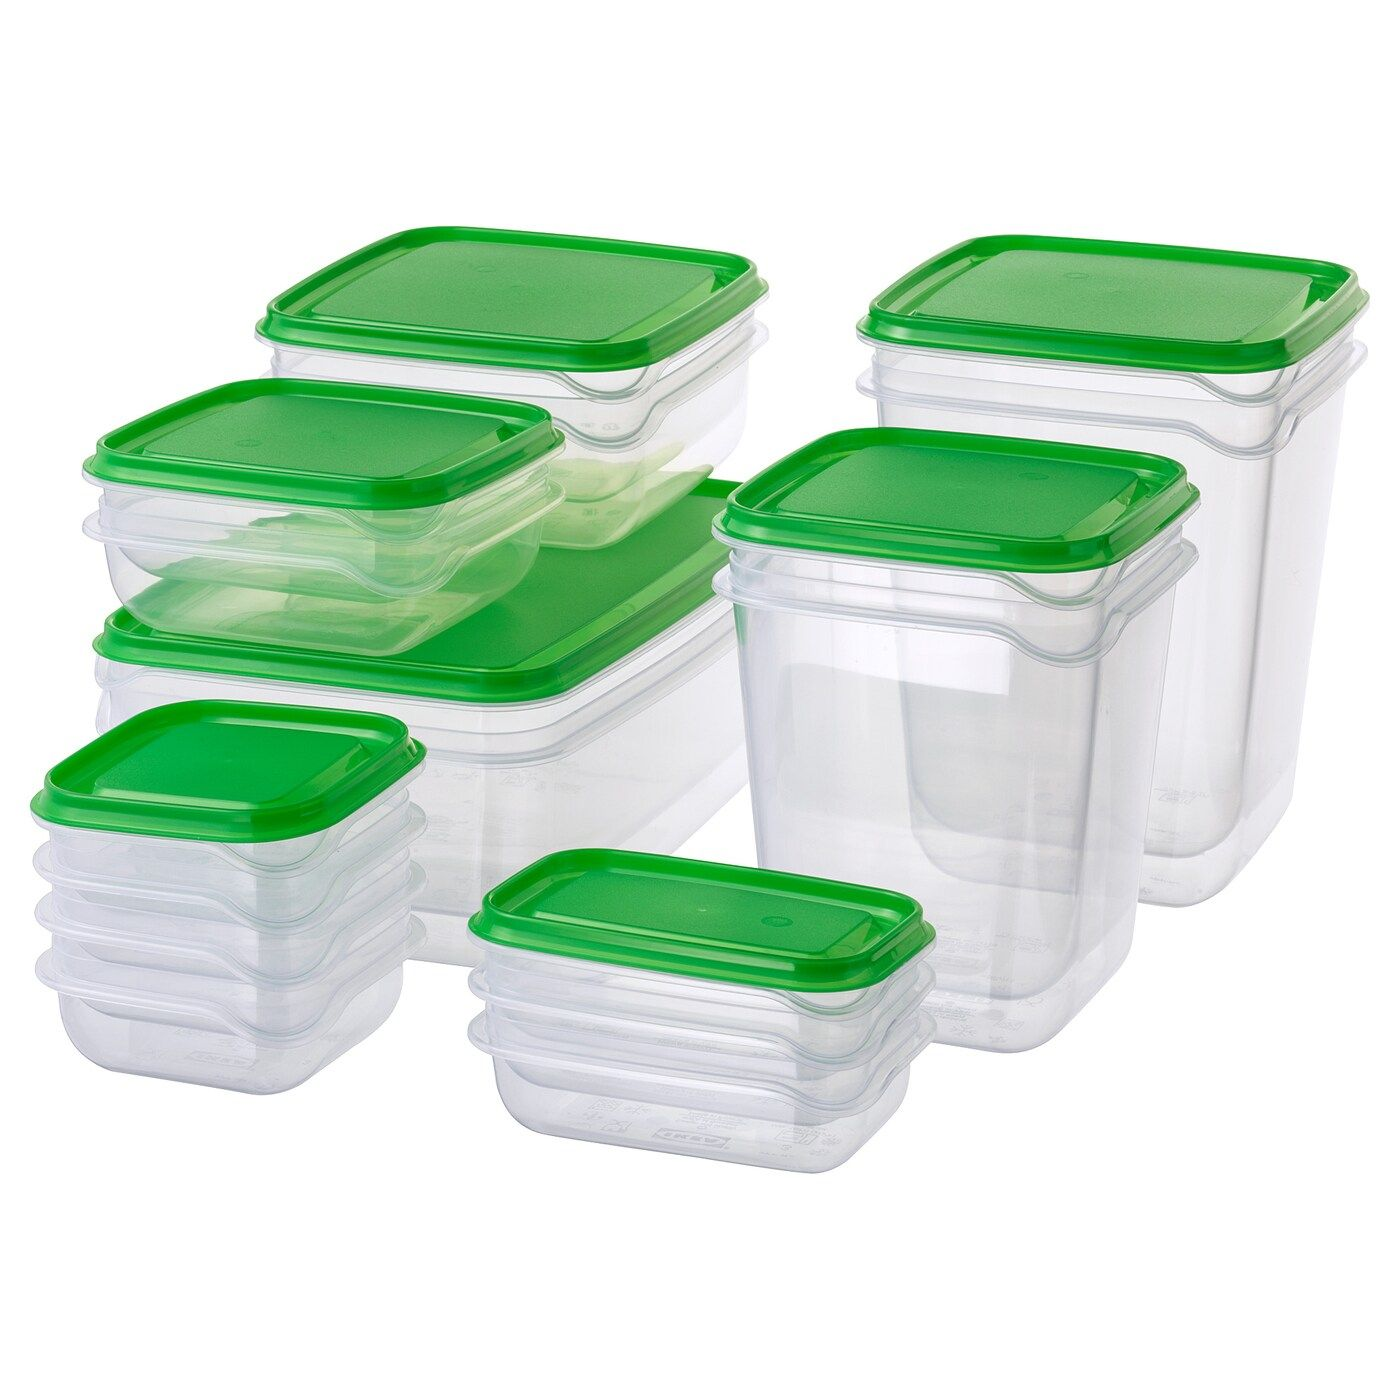 16 Best Food Storage Containers 2021 Top Glass And Plastic Food Storage Containers